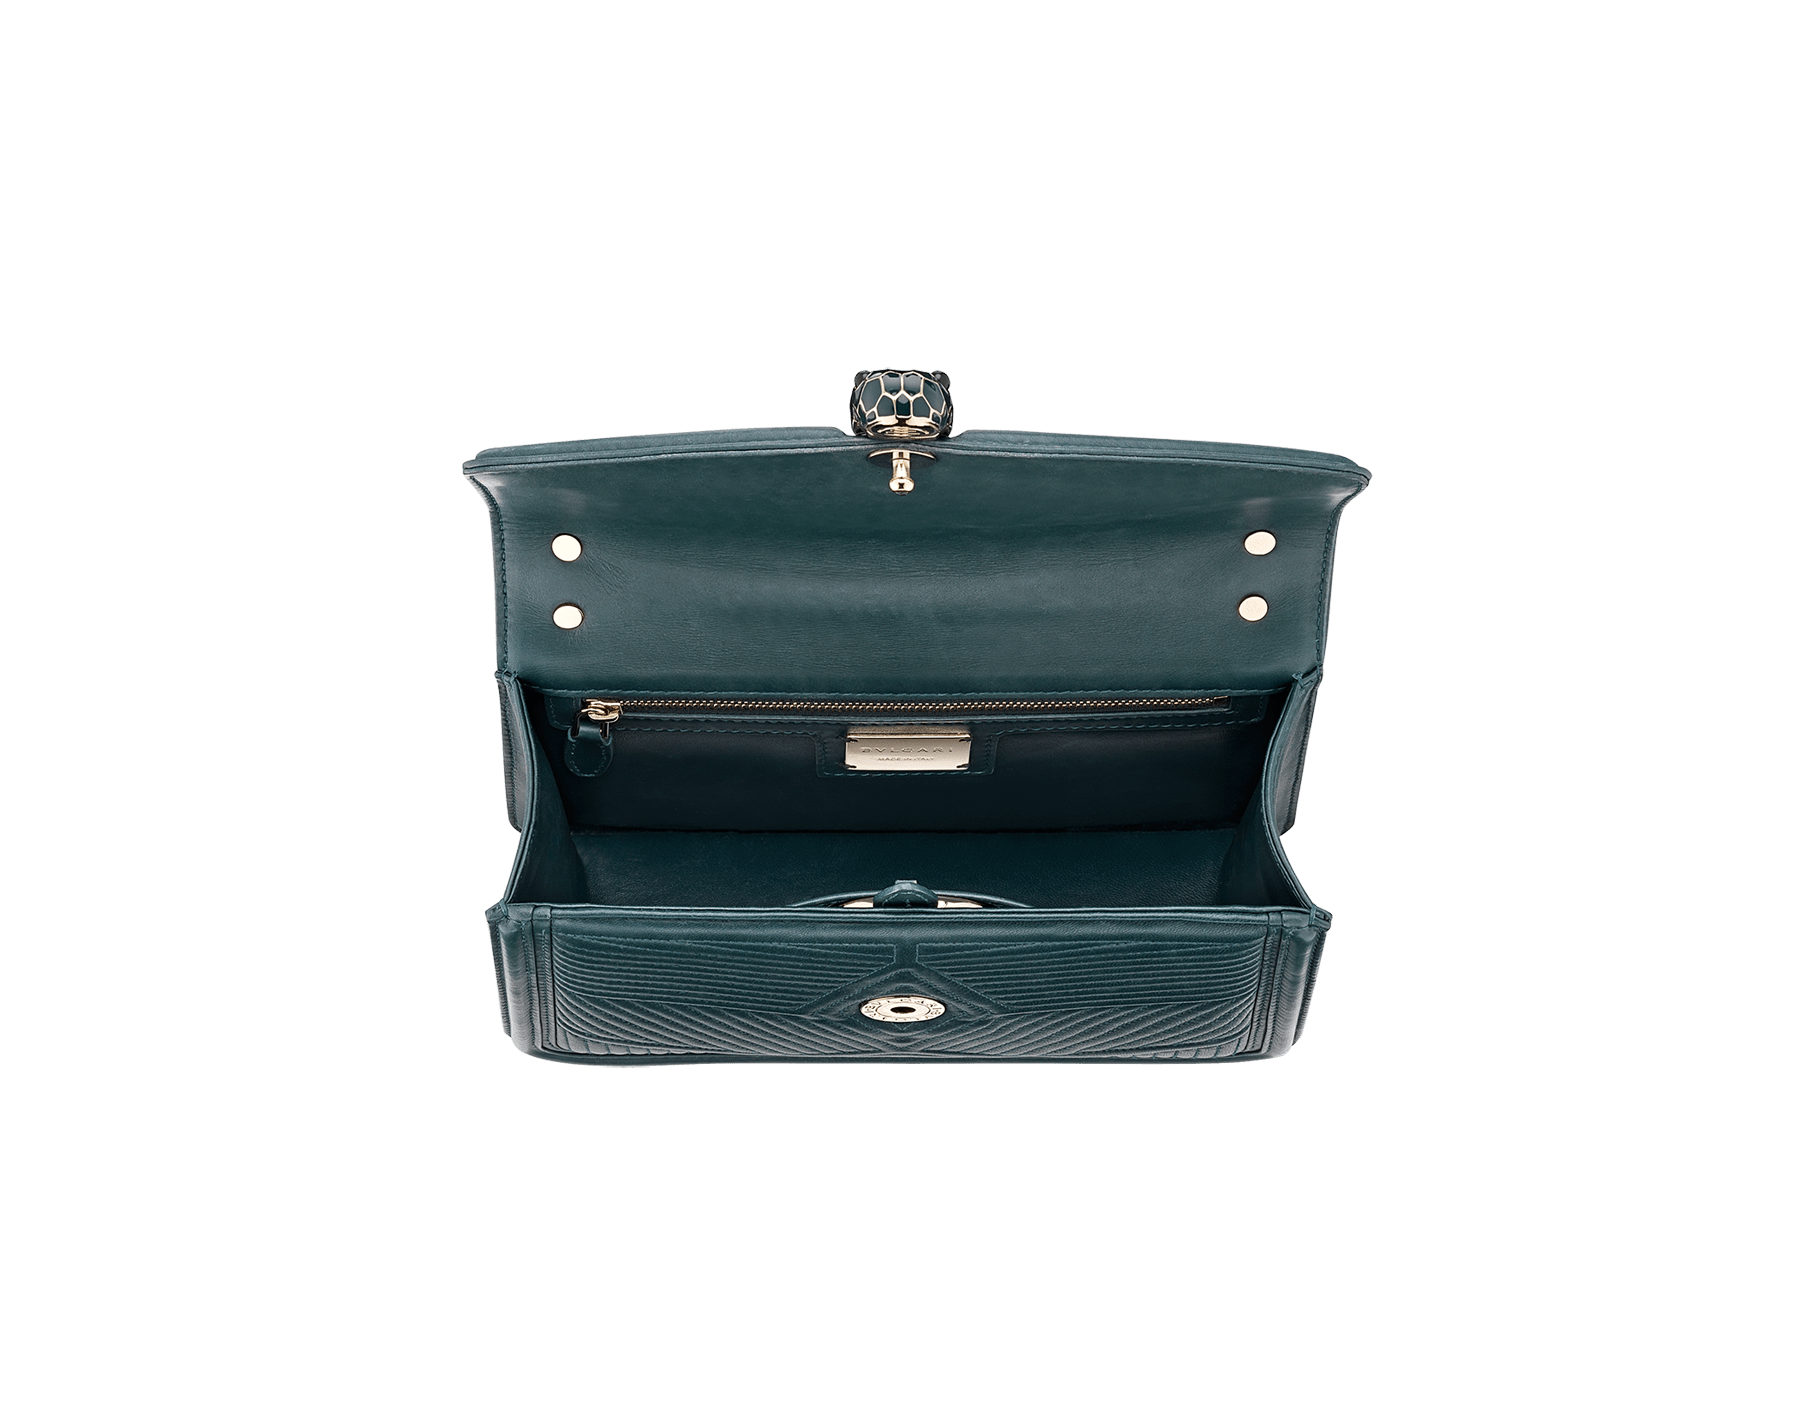 Serpenti Diamond Blast shoulder bag in forest emerald quilted nappa leather body and forest emerald calf leather frames. Snakehead closure in light gold plated brass decorated with forest emerald and black enamel, and black onyx eyes. 287850 image 4